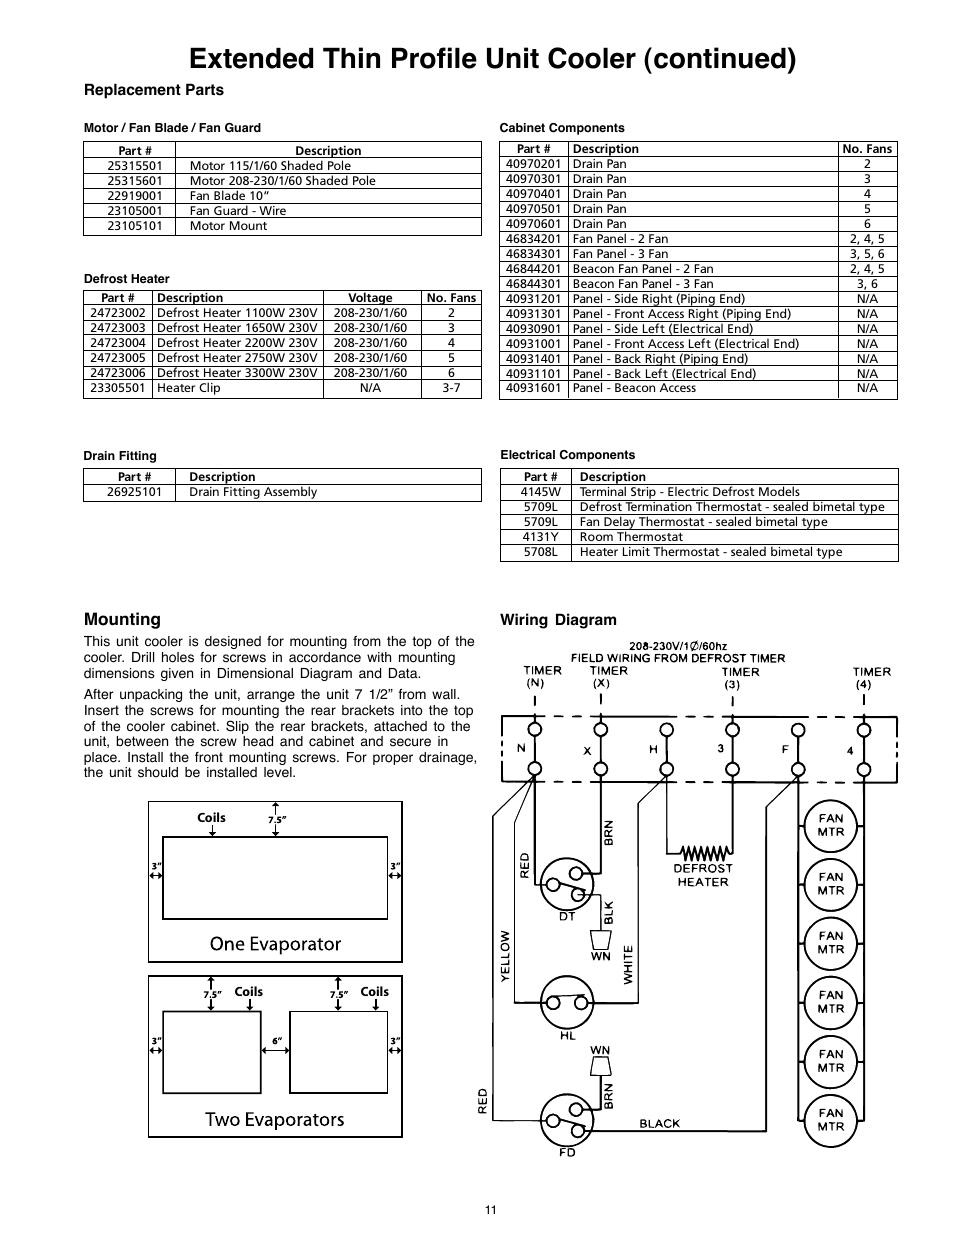 heatcraft refrigeration products 25005601 page11?resize\\\\\\\\\\\\\\\\\\\\\\\\\\\\\\\=665%2C861 heatcraft walk in cooler wiring diagram heatcraft wiring heatcraft evaporator wiring diagram at fashall.co